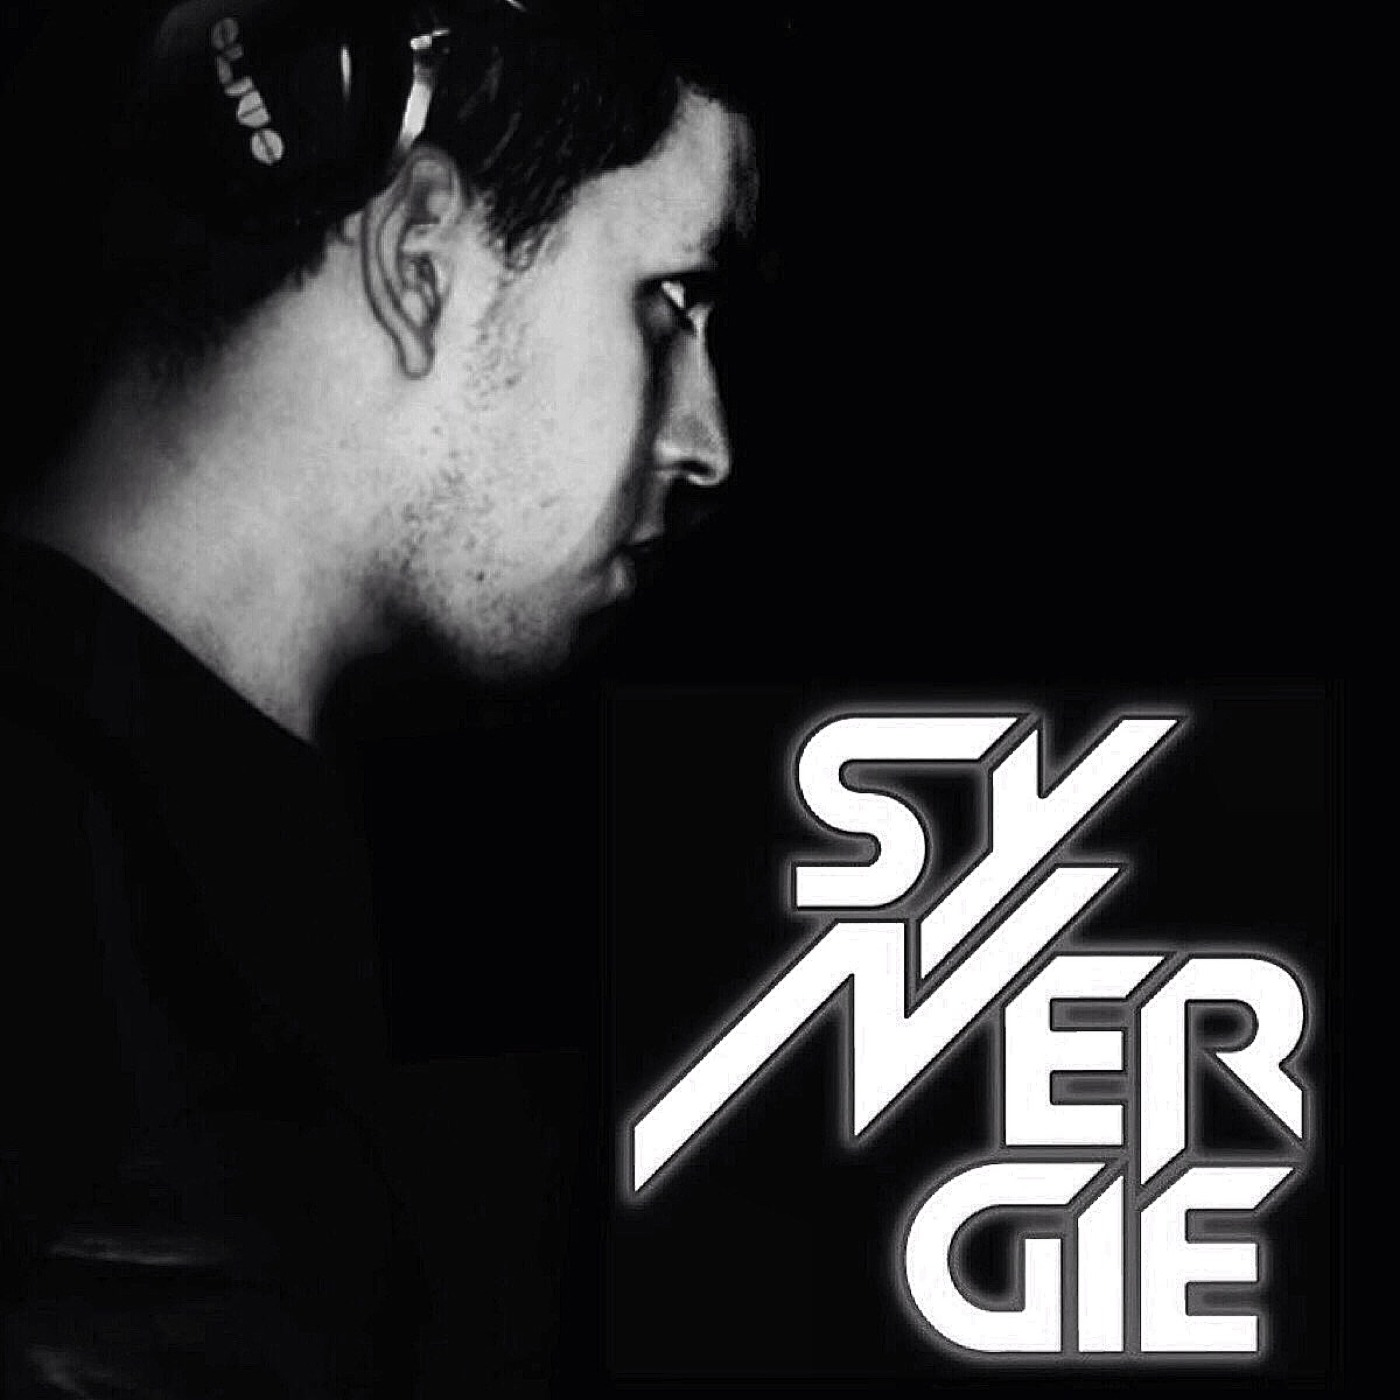 Synergie by Olivo